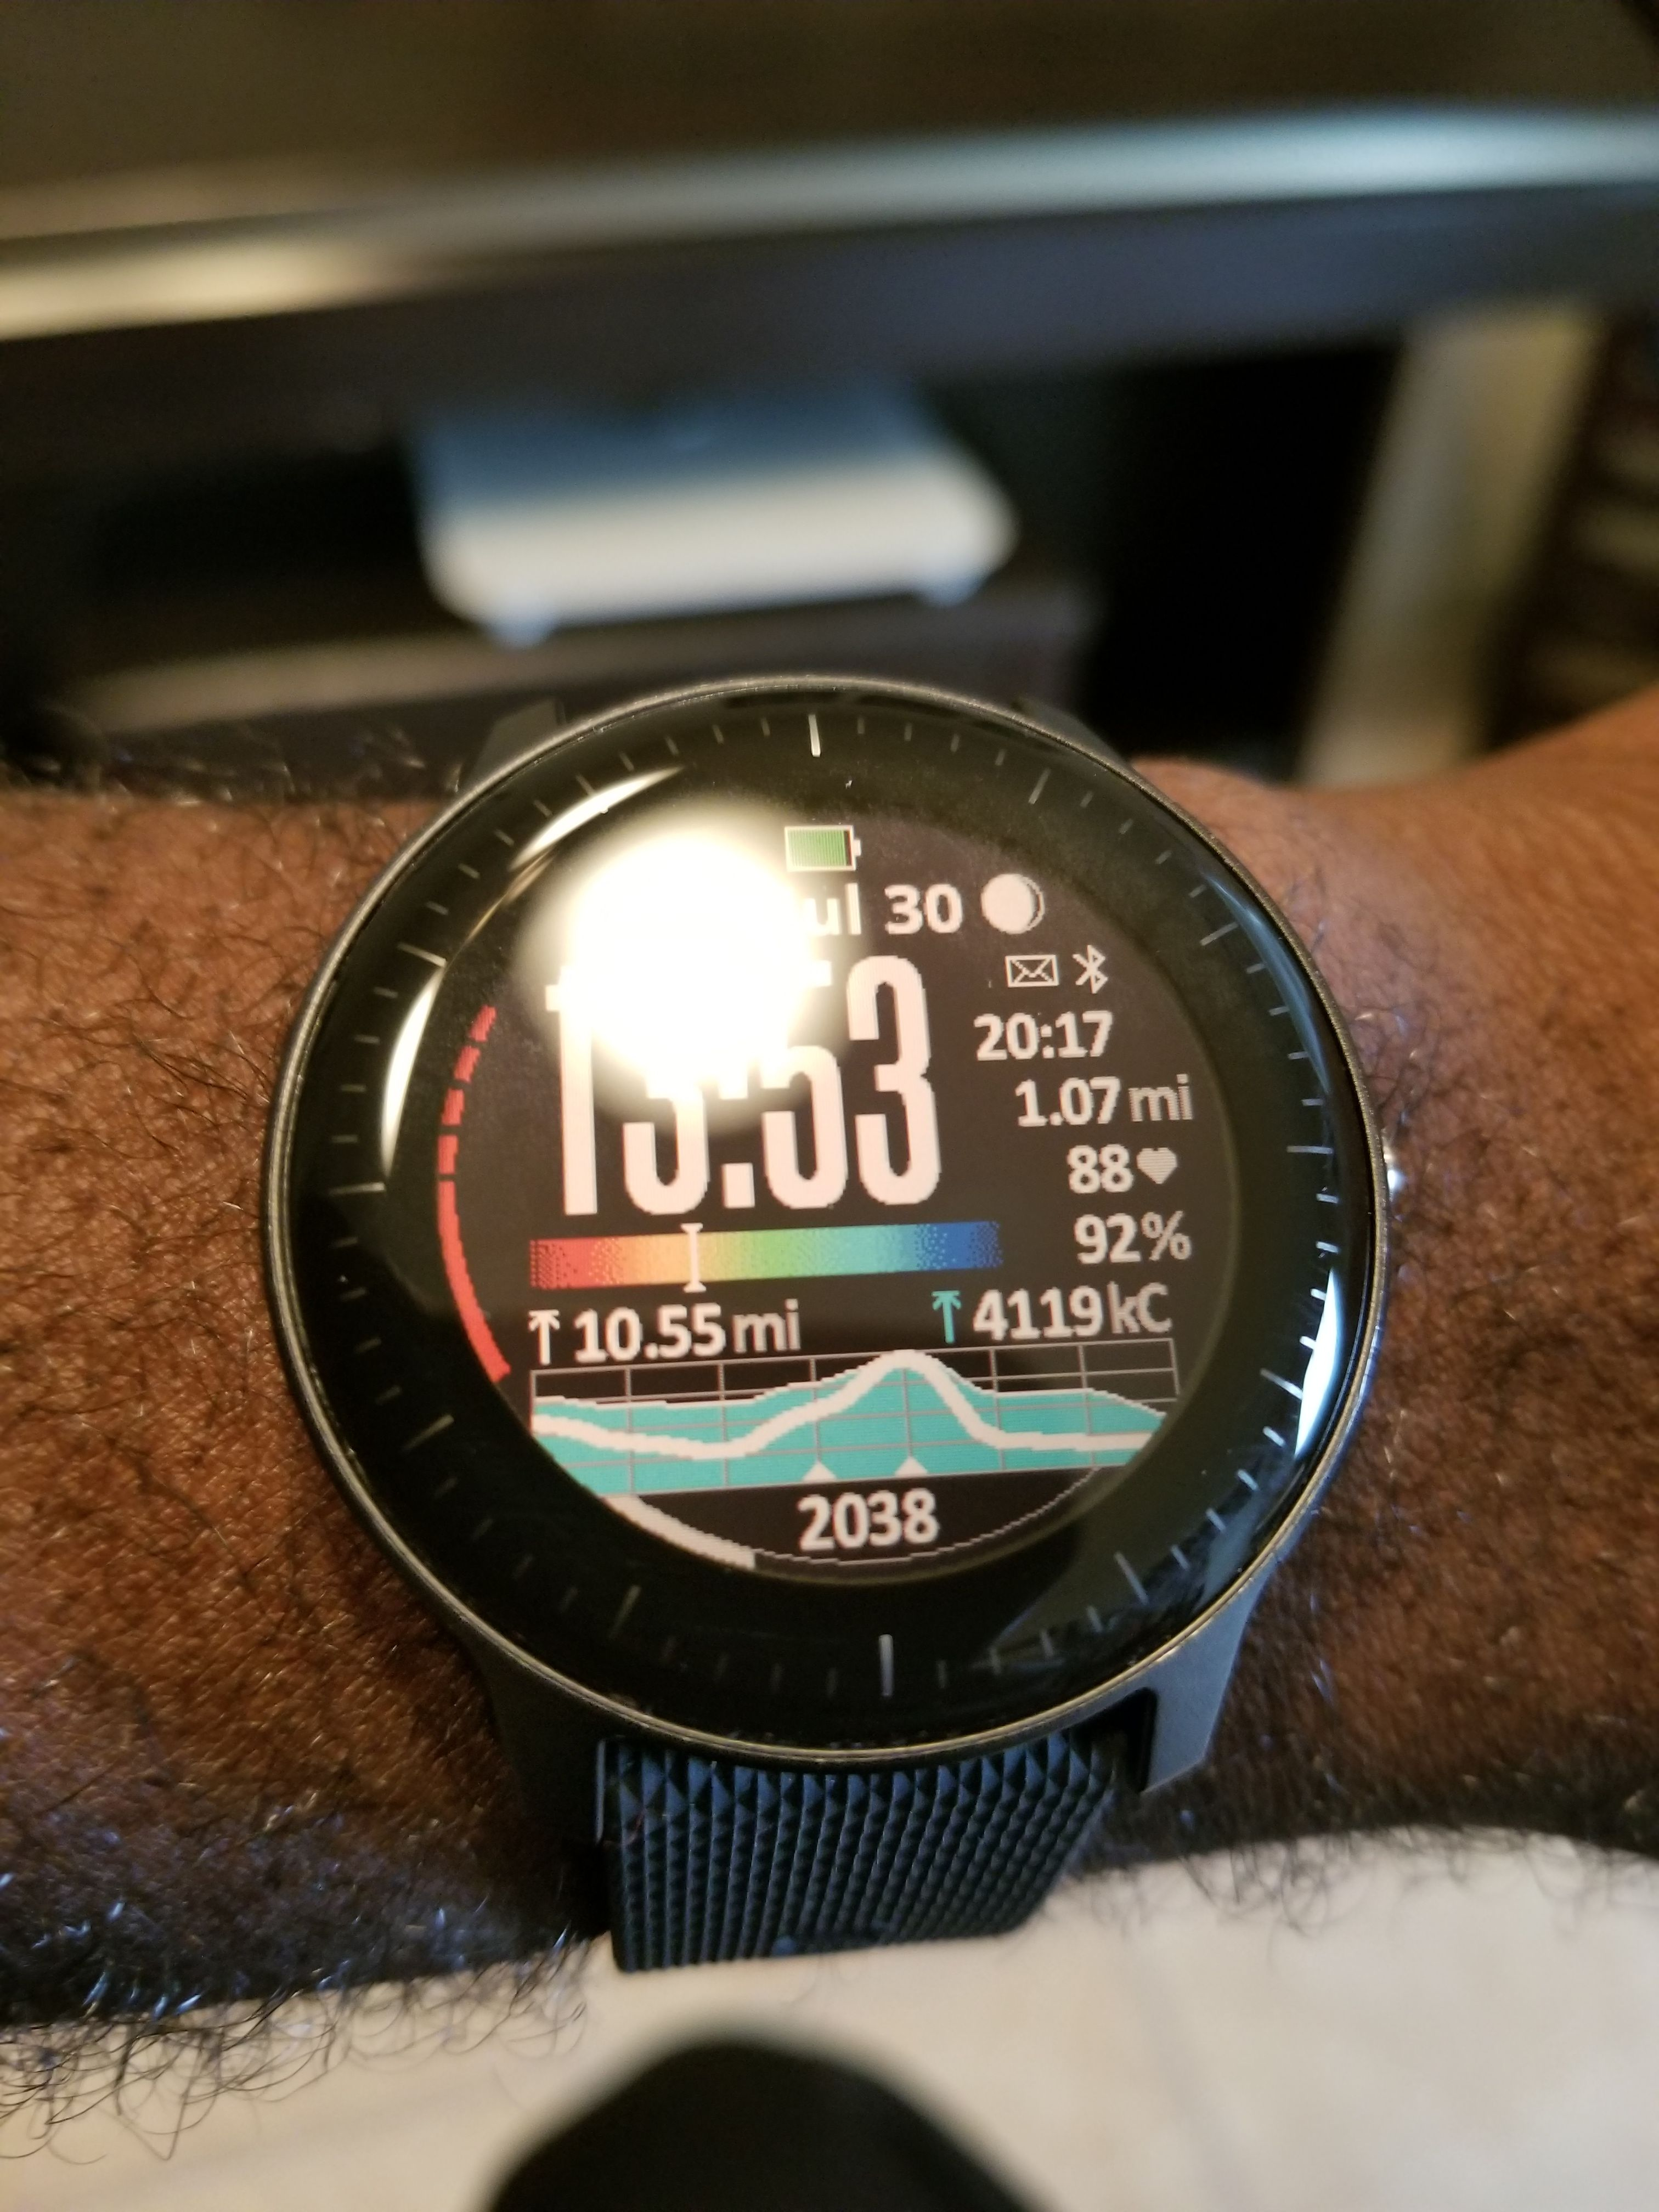 Fitbit Versa connected GPS issues - Fitbit Community